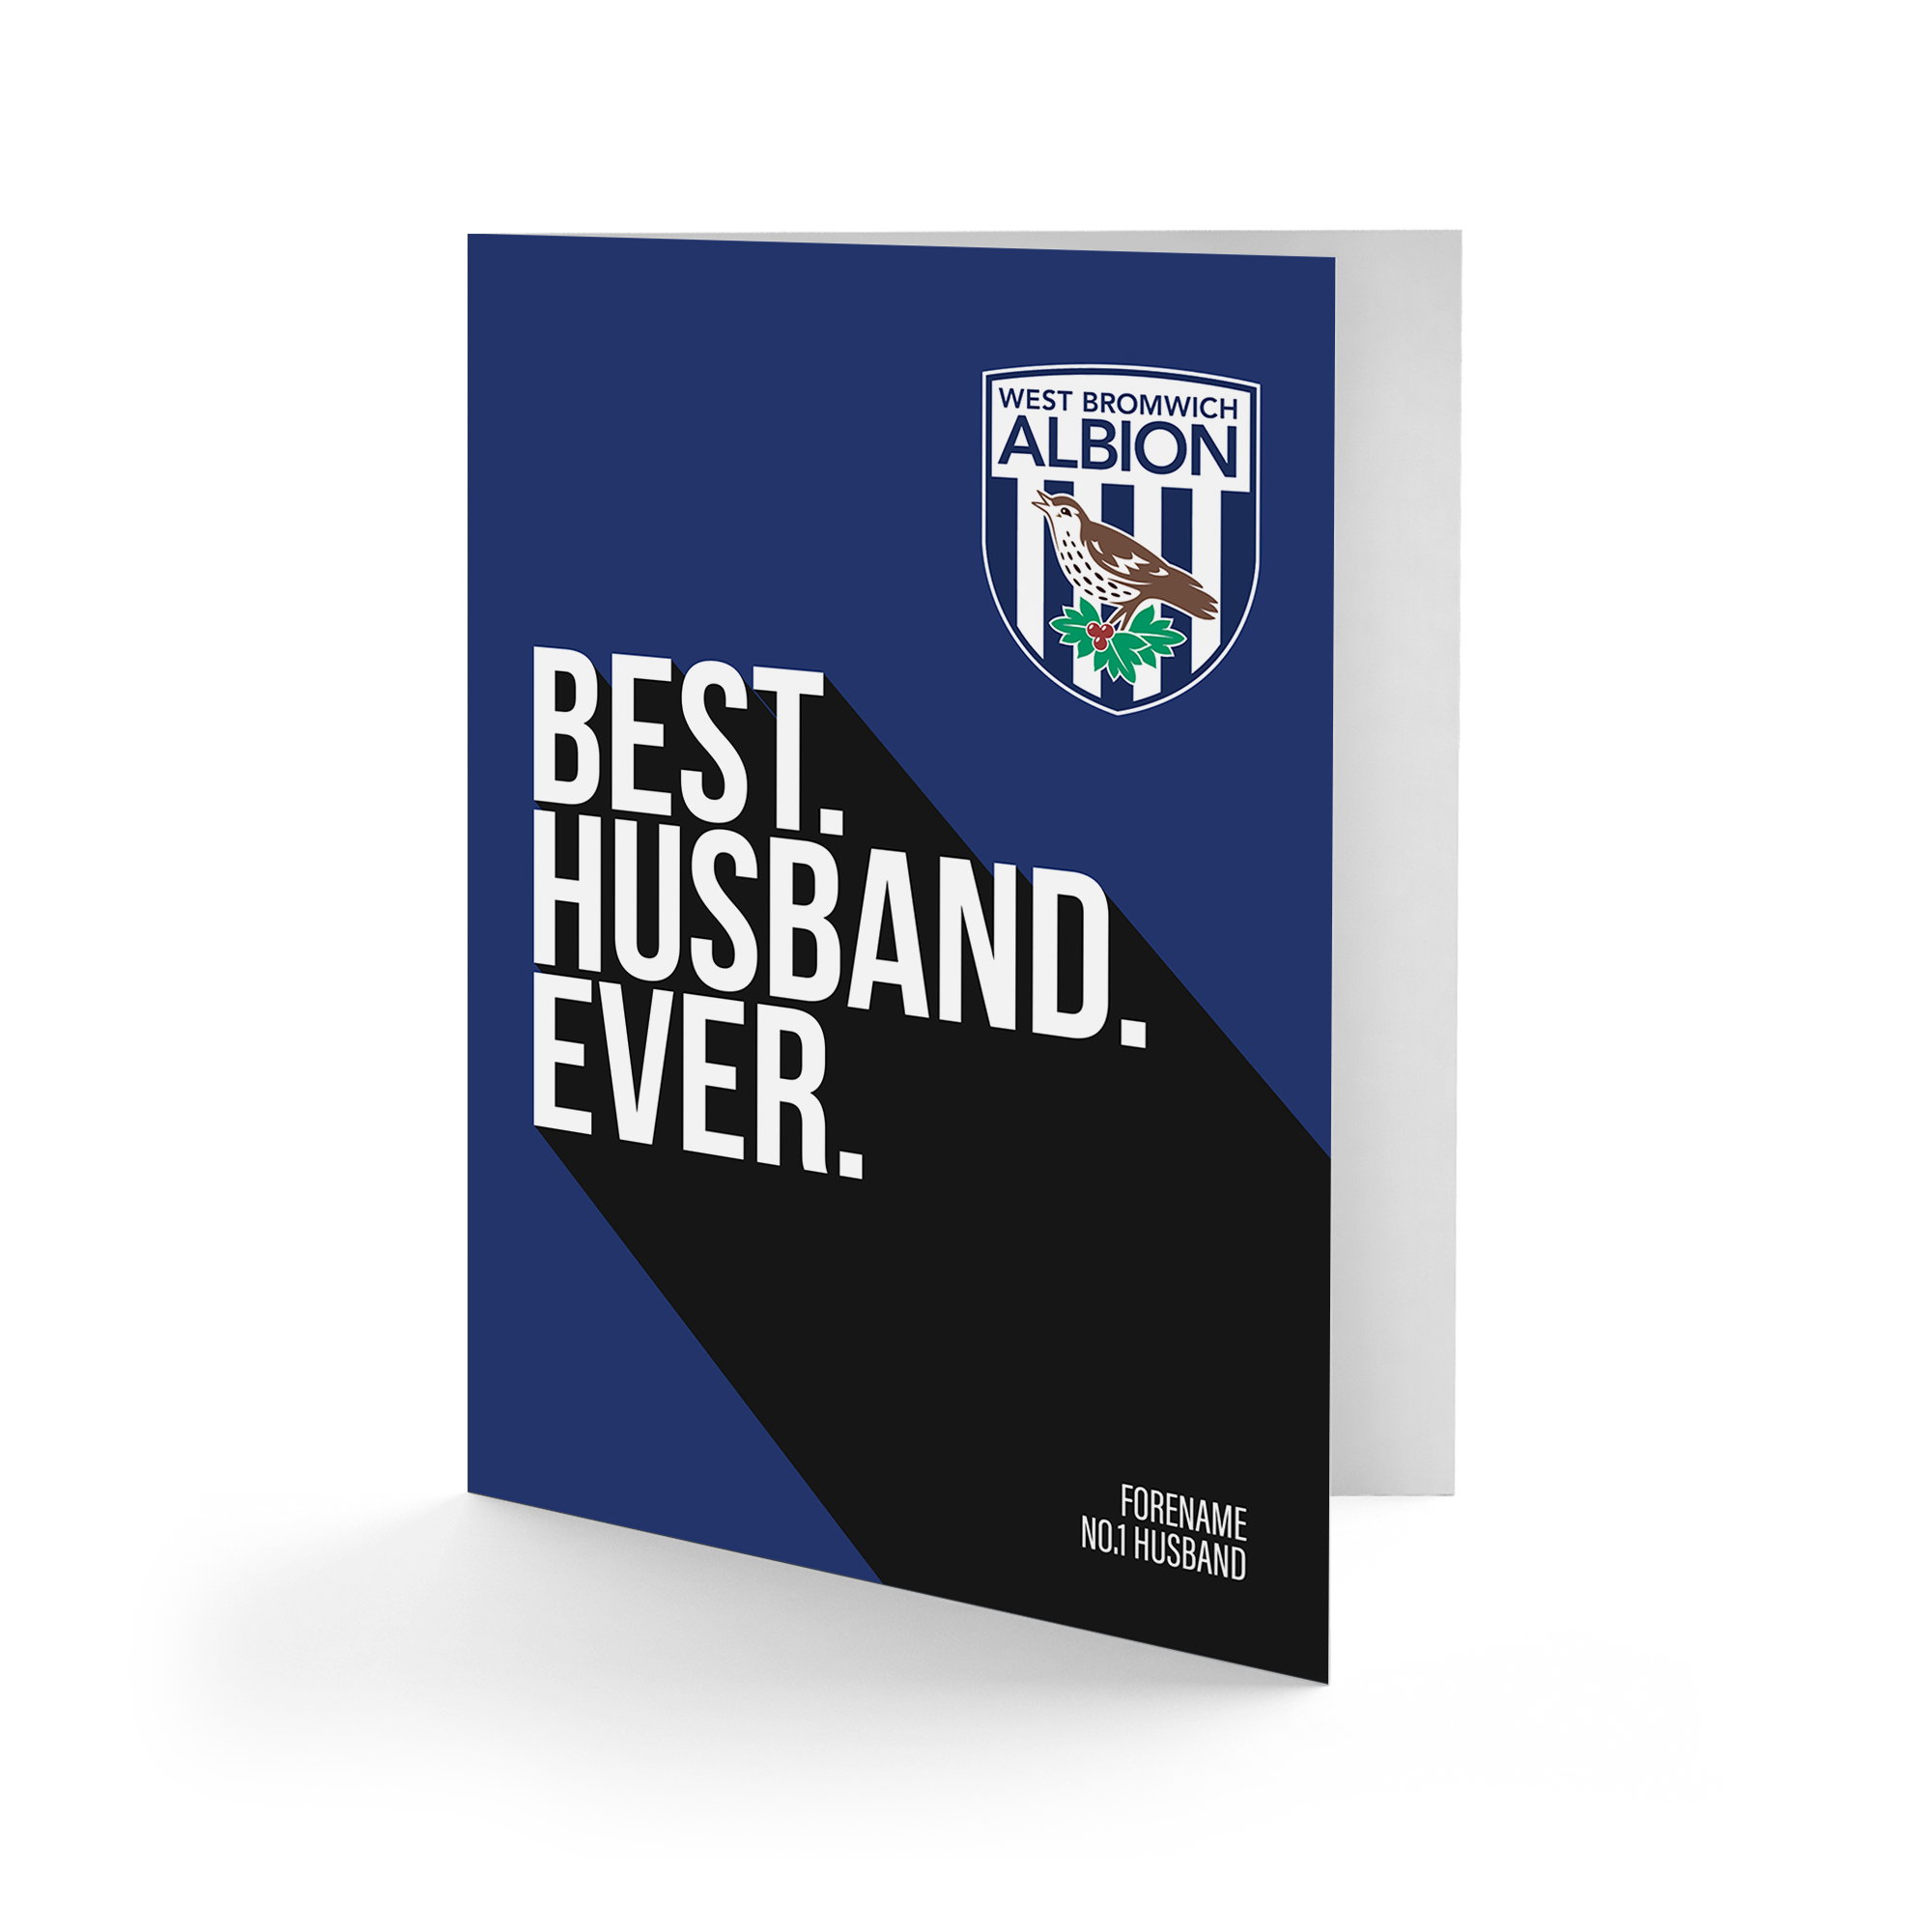 West Bromwich Albion FC Best Husband Ever Card